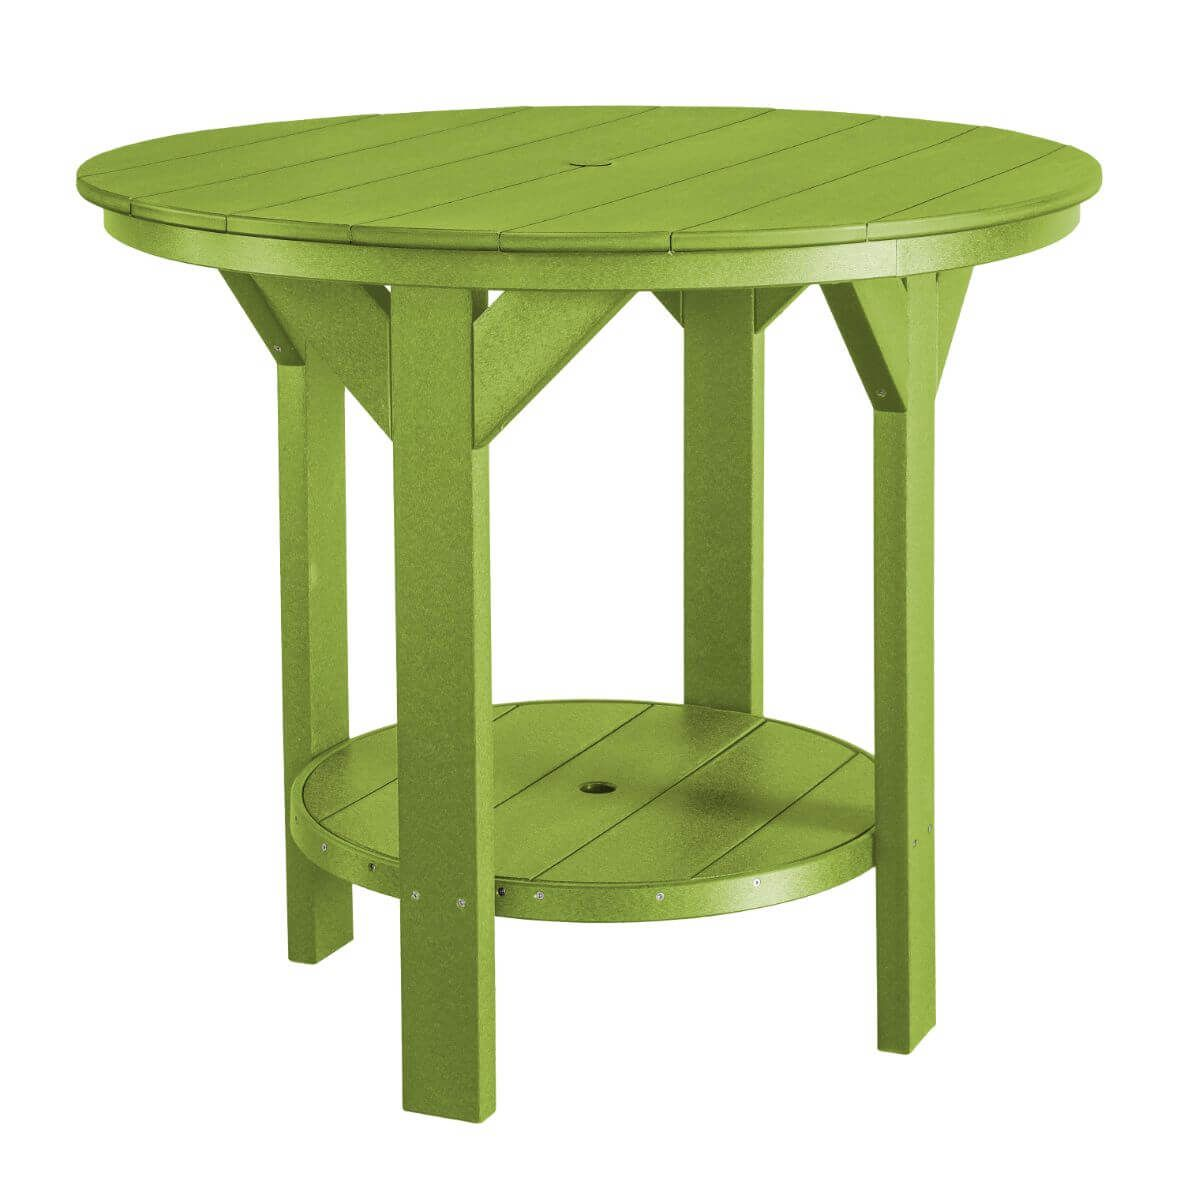 Lime Green Sidra Outdoor Pub Table